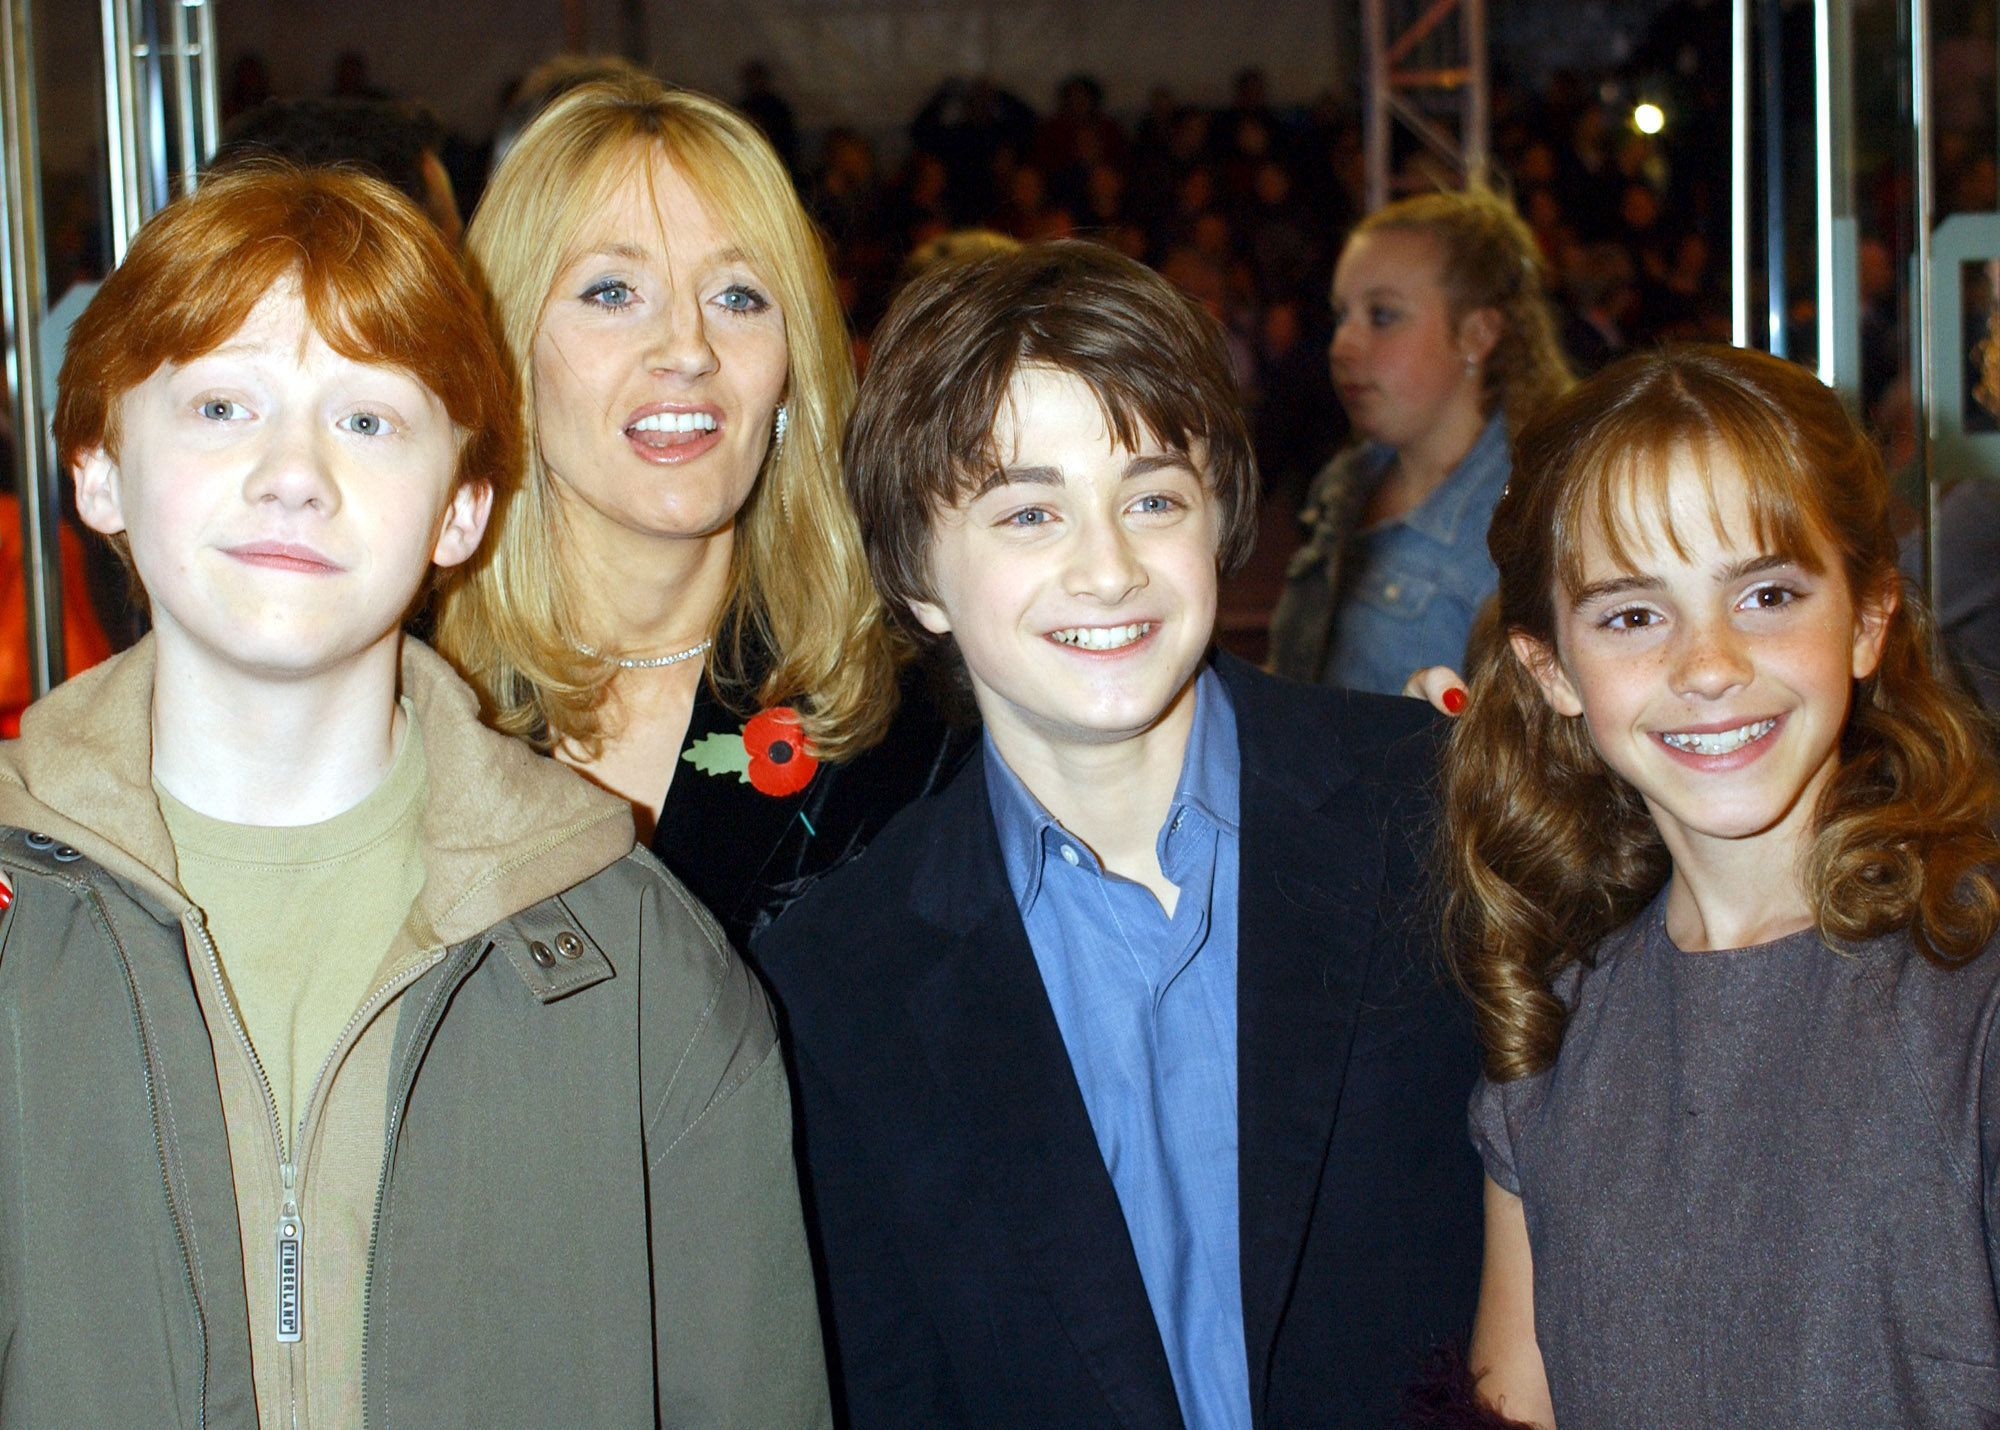 Rupert Grint, Daniel Radcliffe, and Emma Watson with the author J K Rowling.